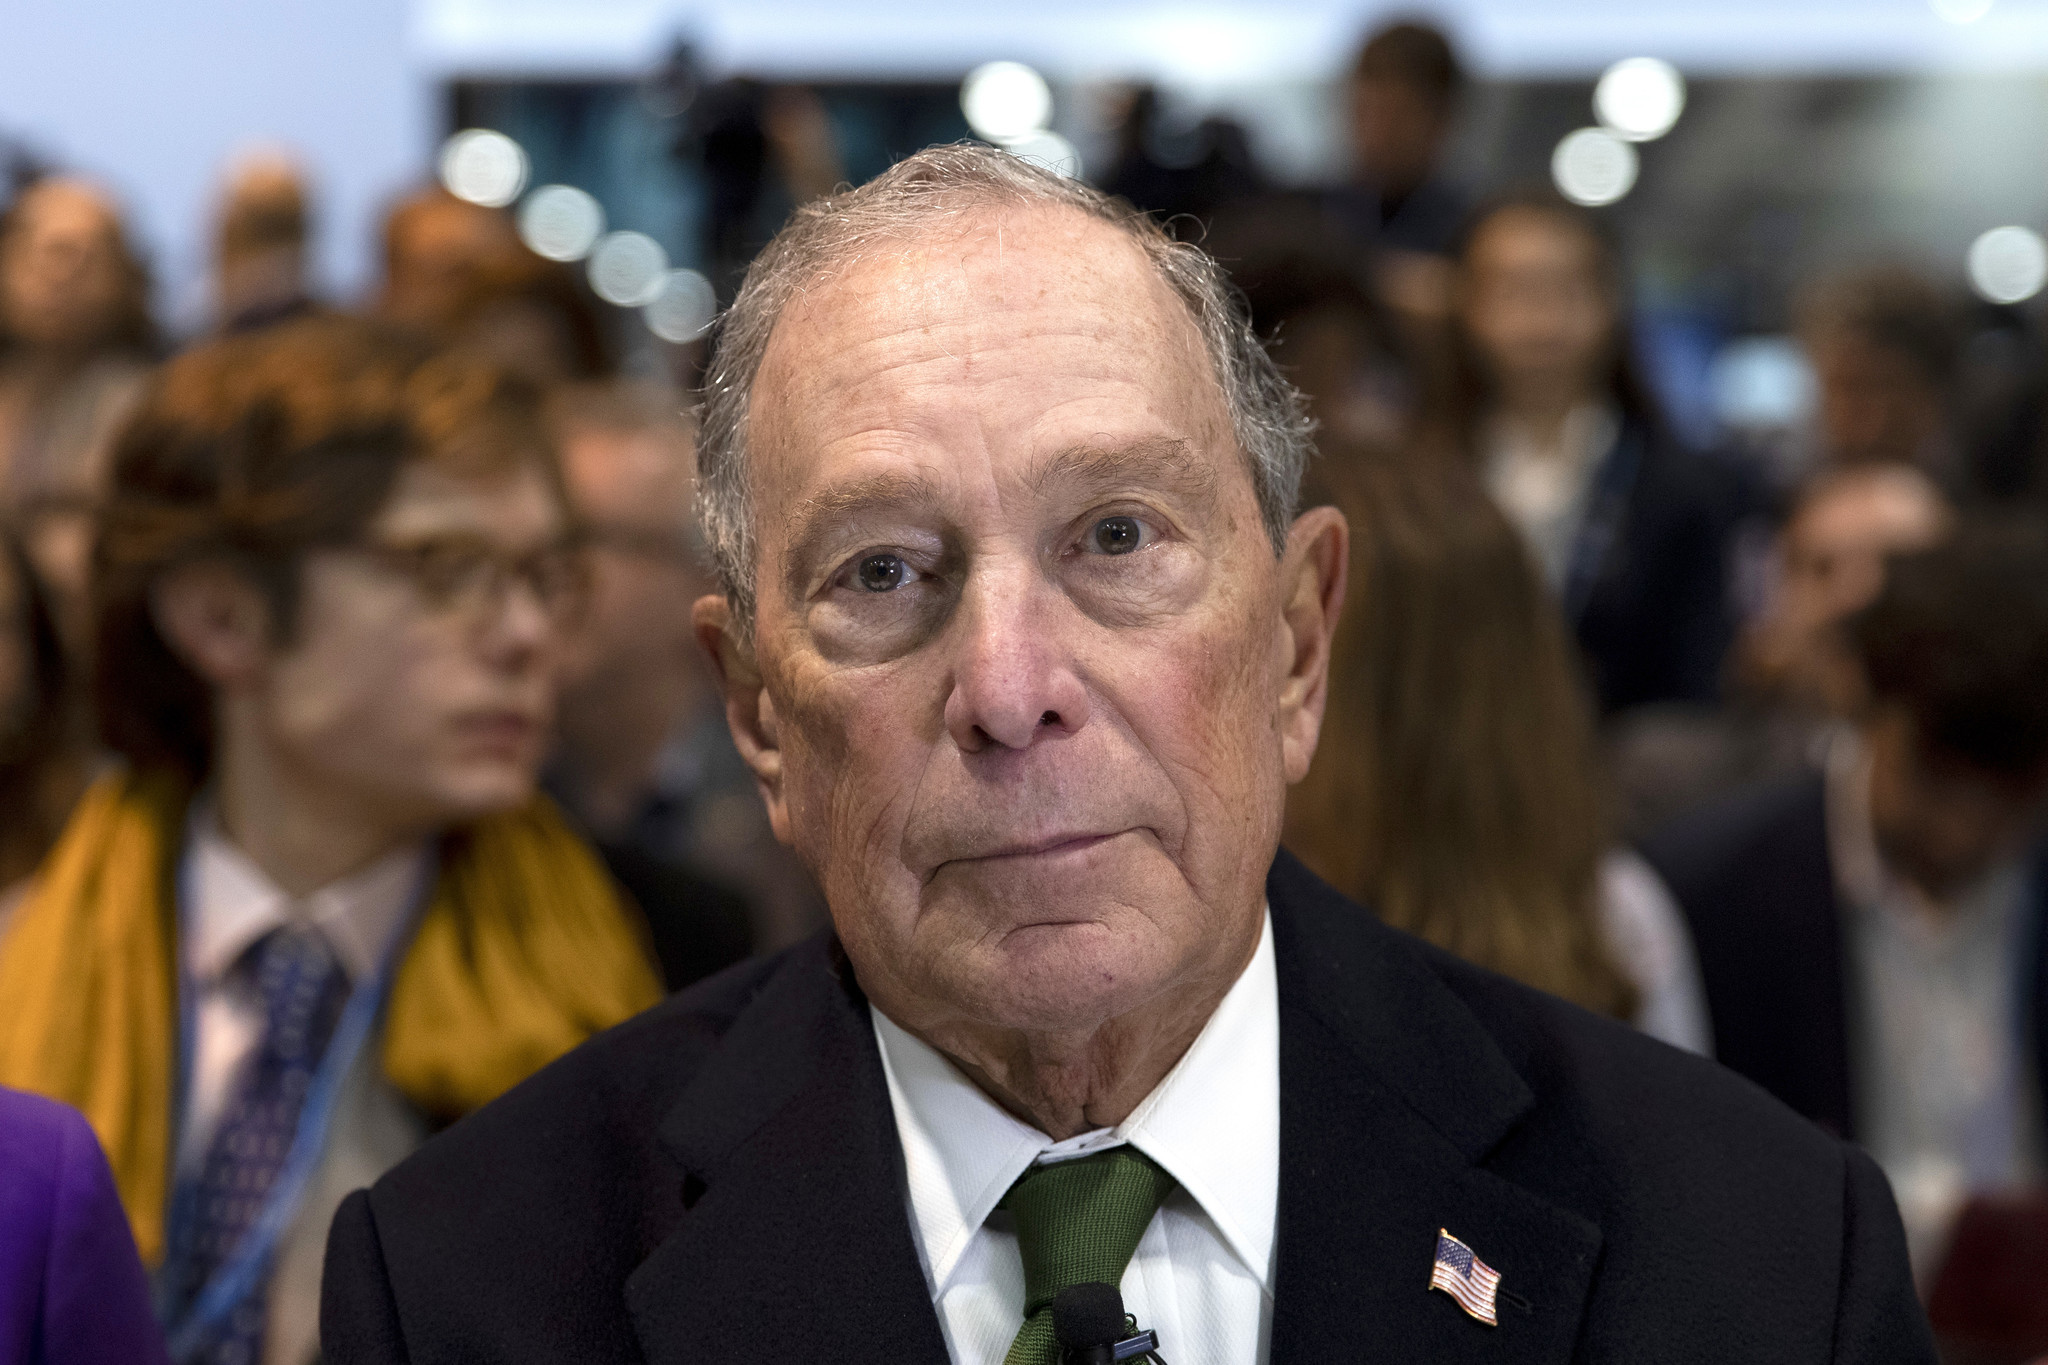 'Mini Mike' Bloomberg wins insulting nickname as Trump seeks to meddle in Democratic primary